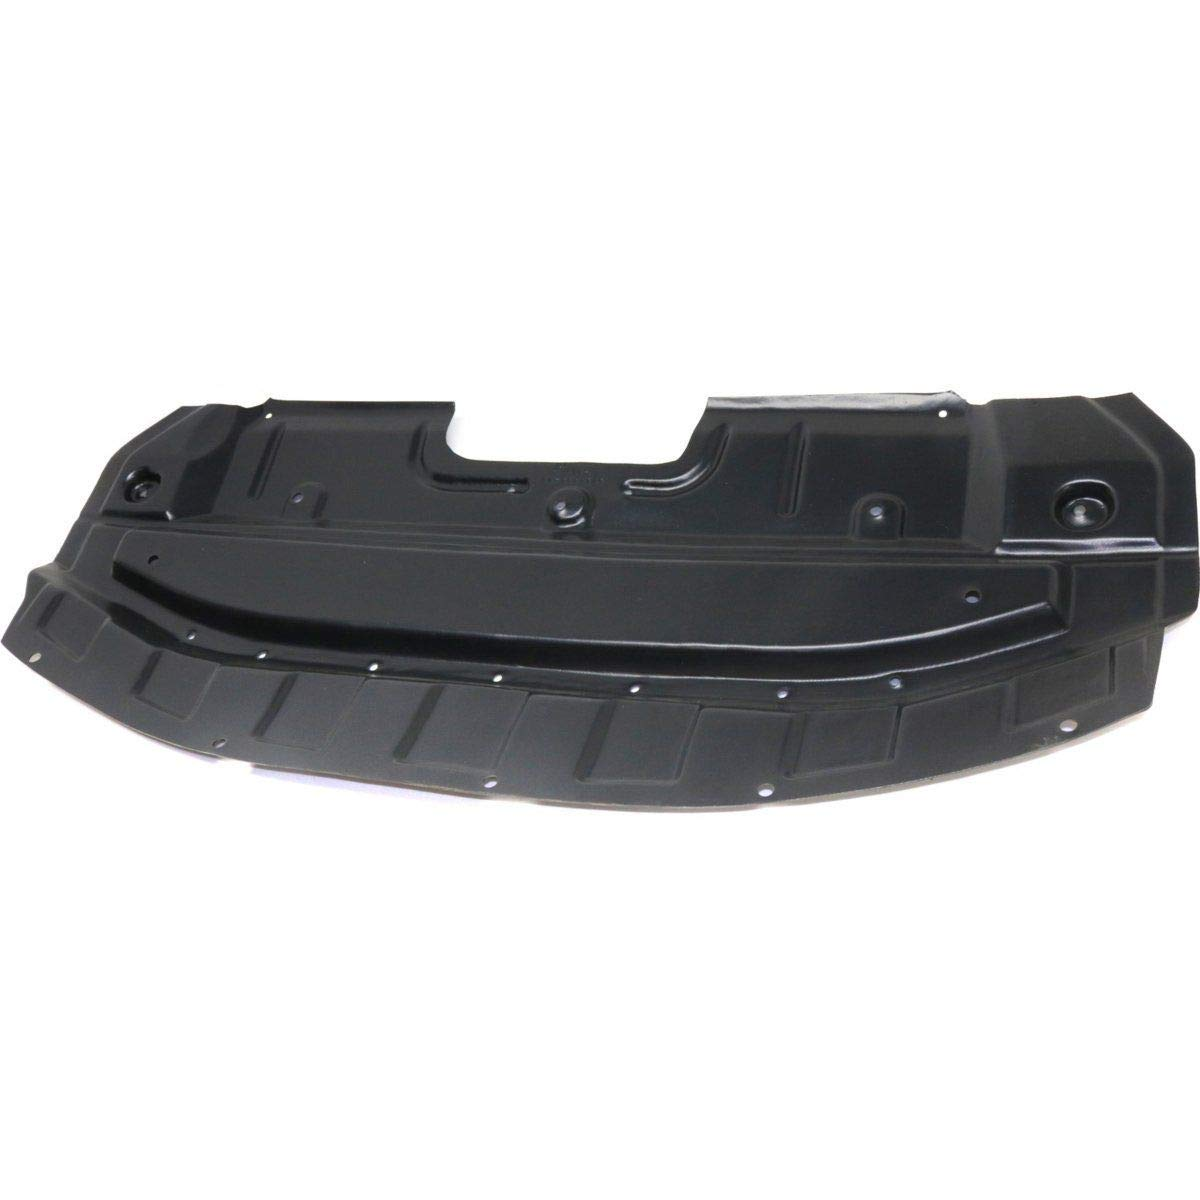 New Undercar Shield For 2007-2012 Nissan Sentra Made Of Plastic NI1228133